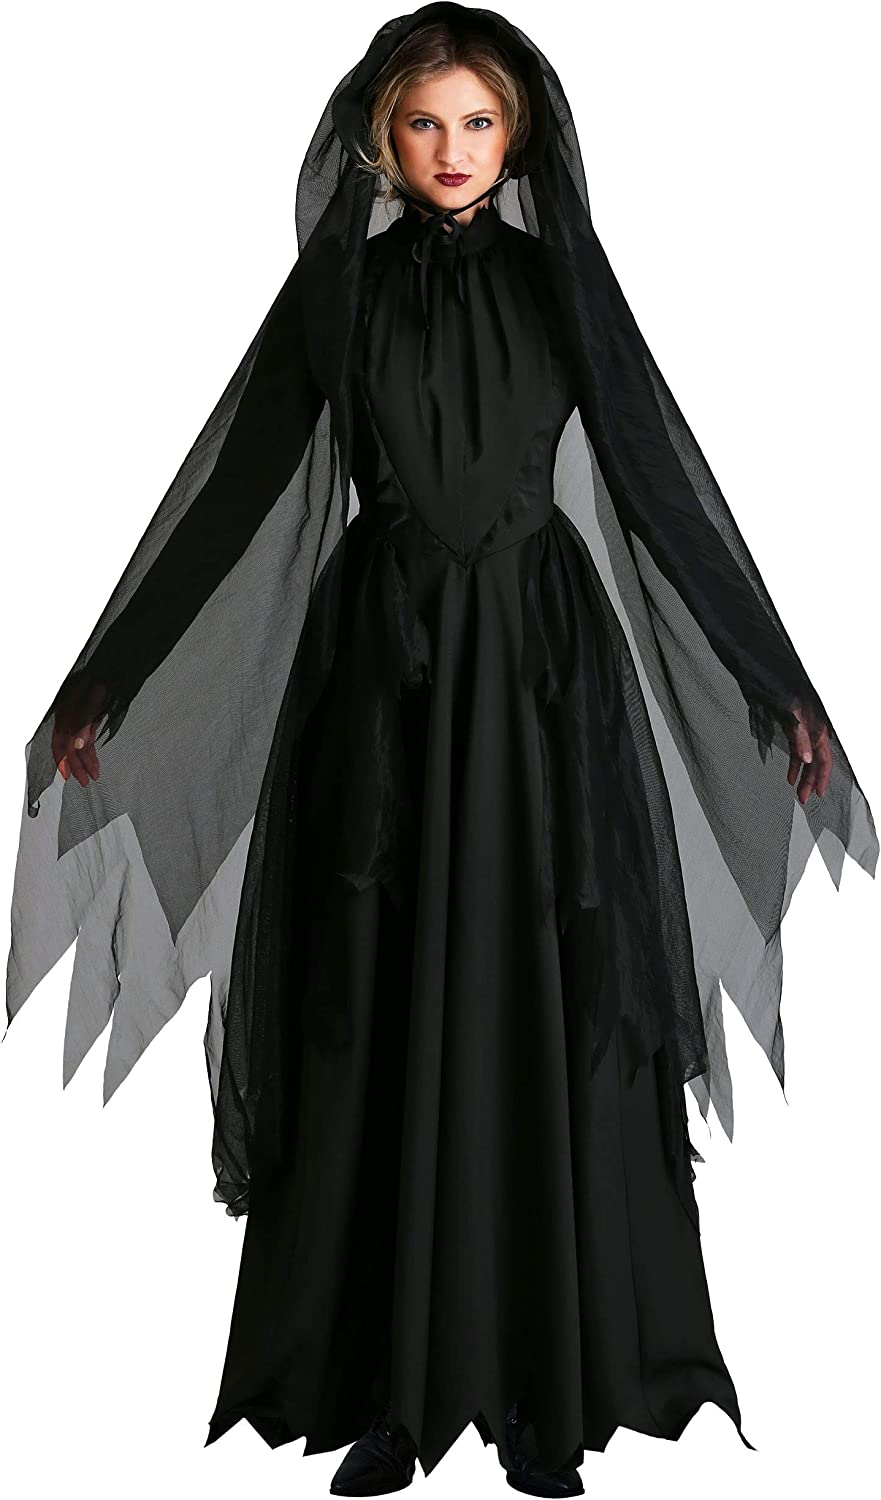 Latest item Lady in Black Women's 55% OFF Costume Ghost